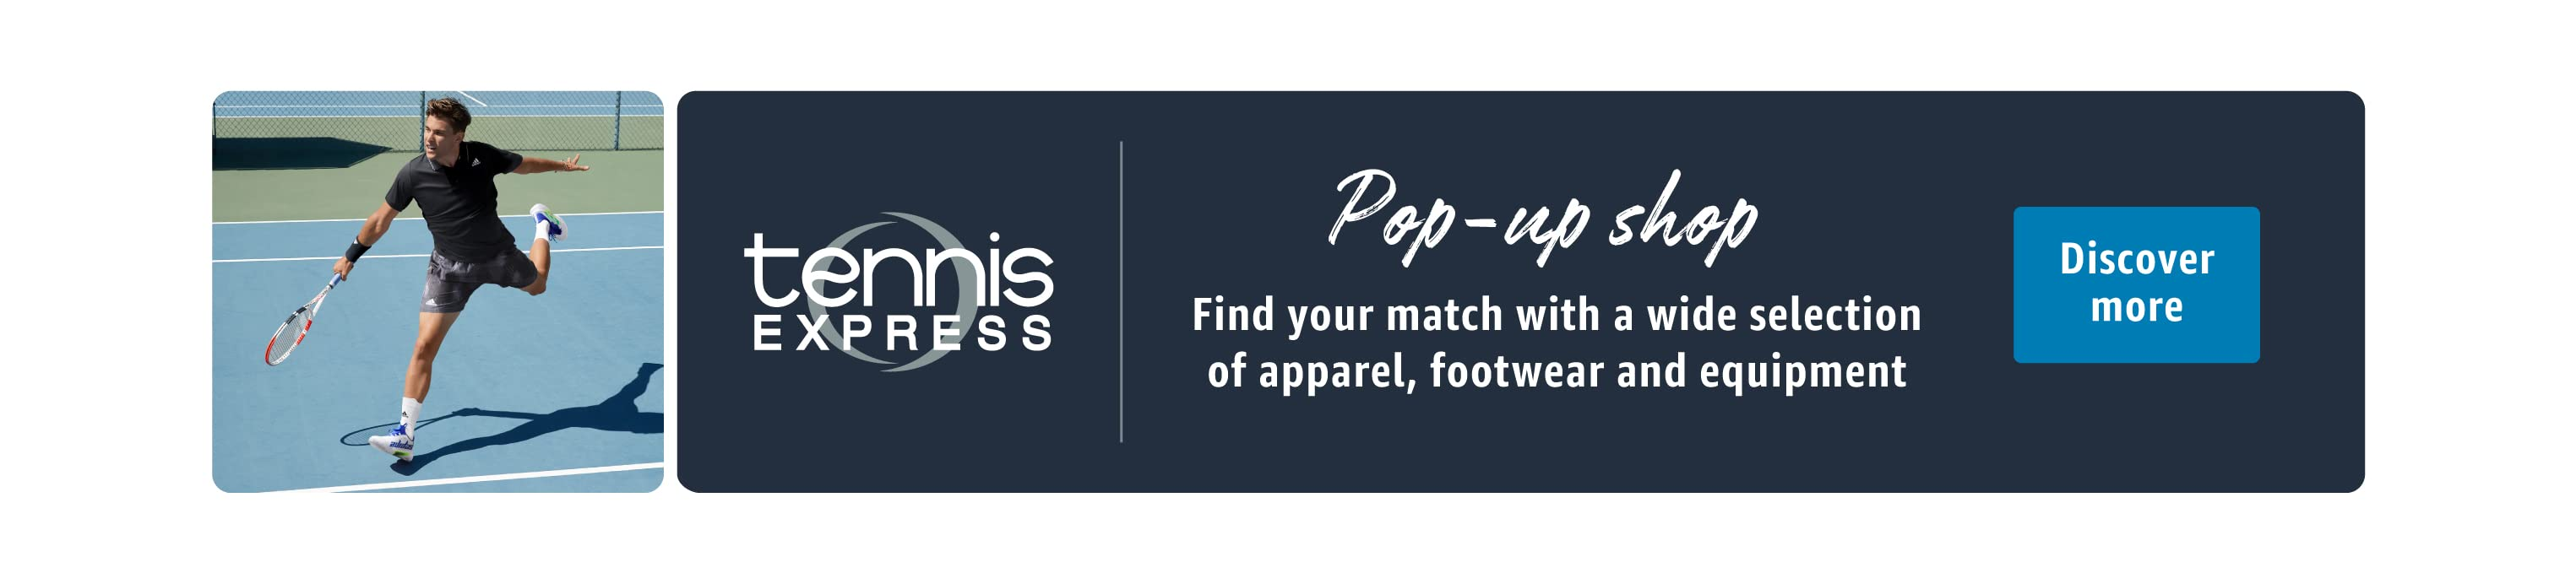 Find your match with a wide selection of apparel, footwear and equipment